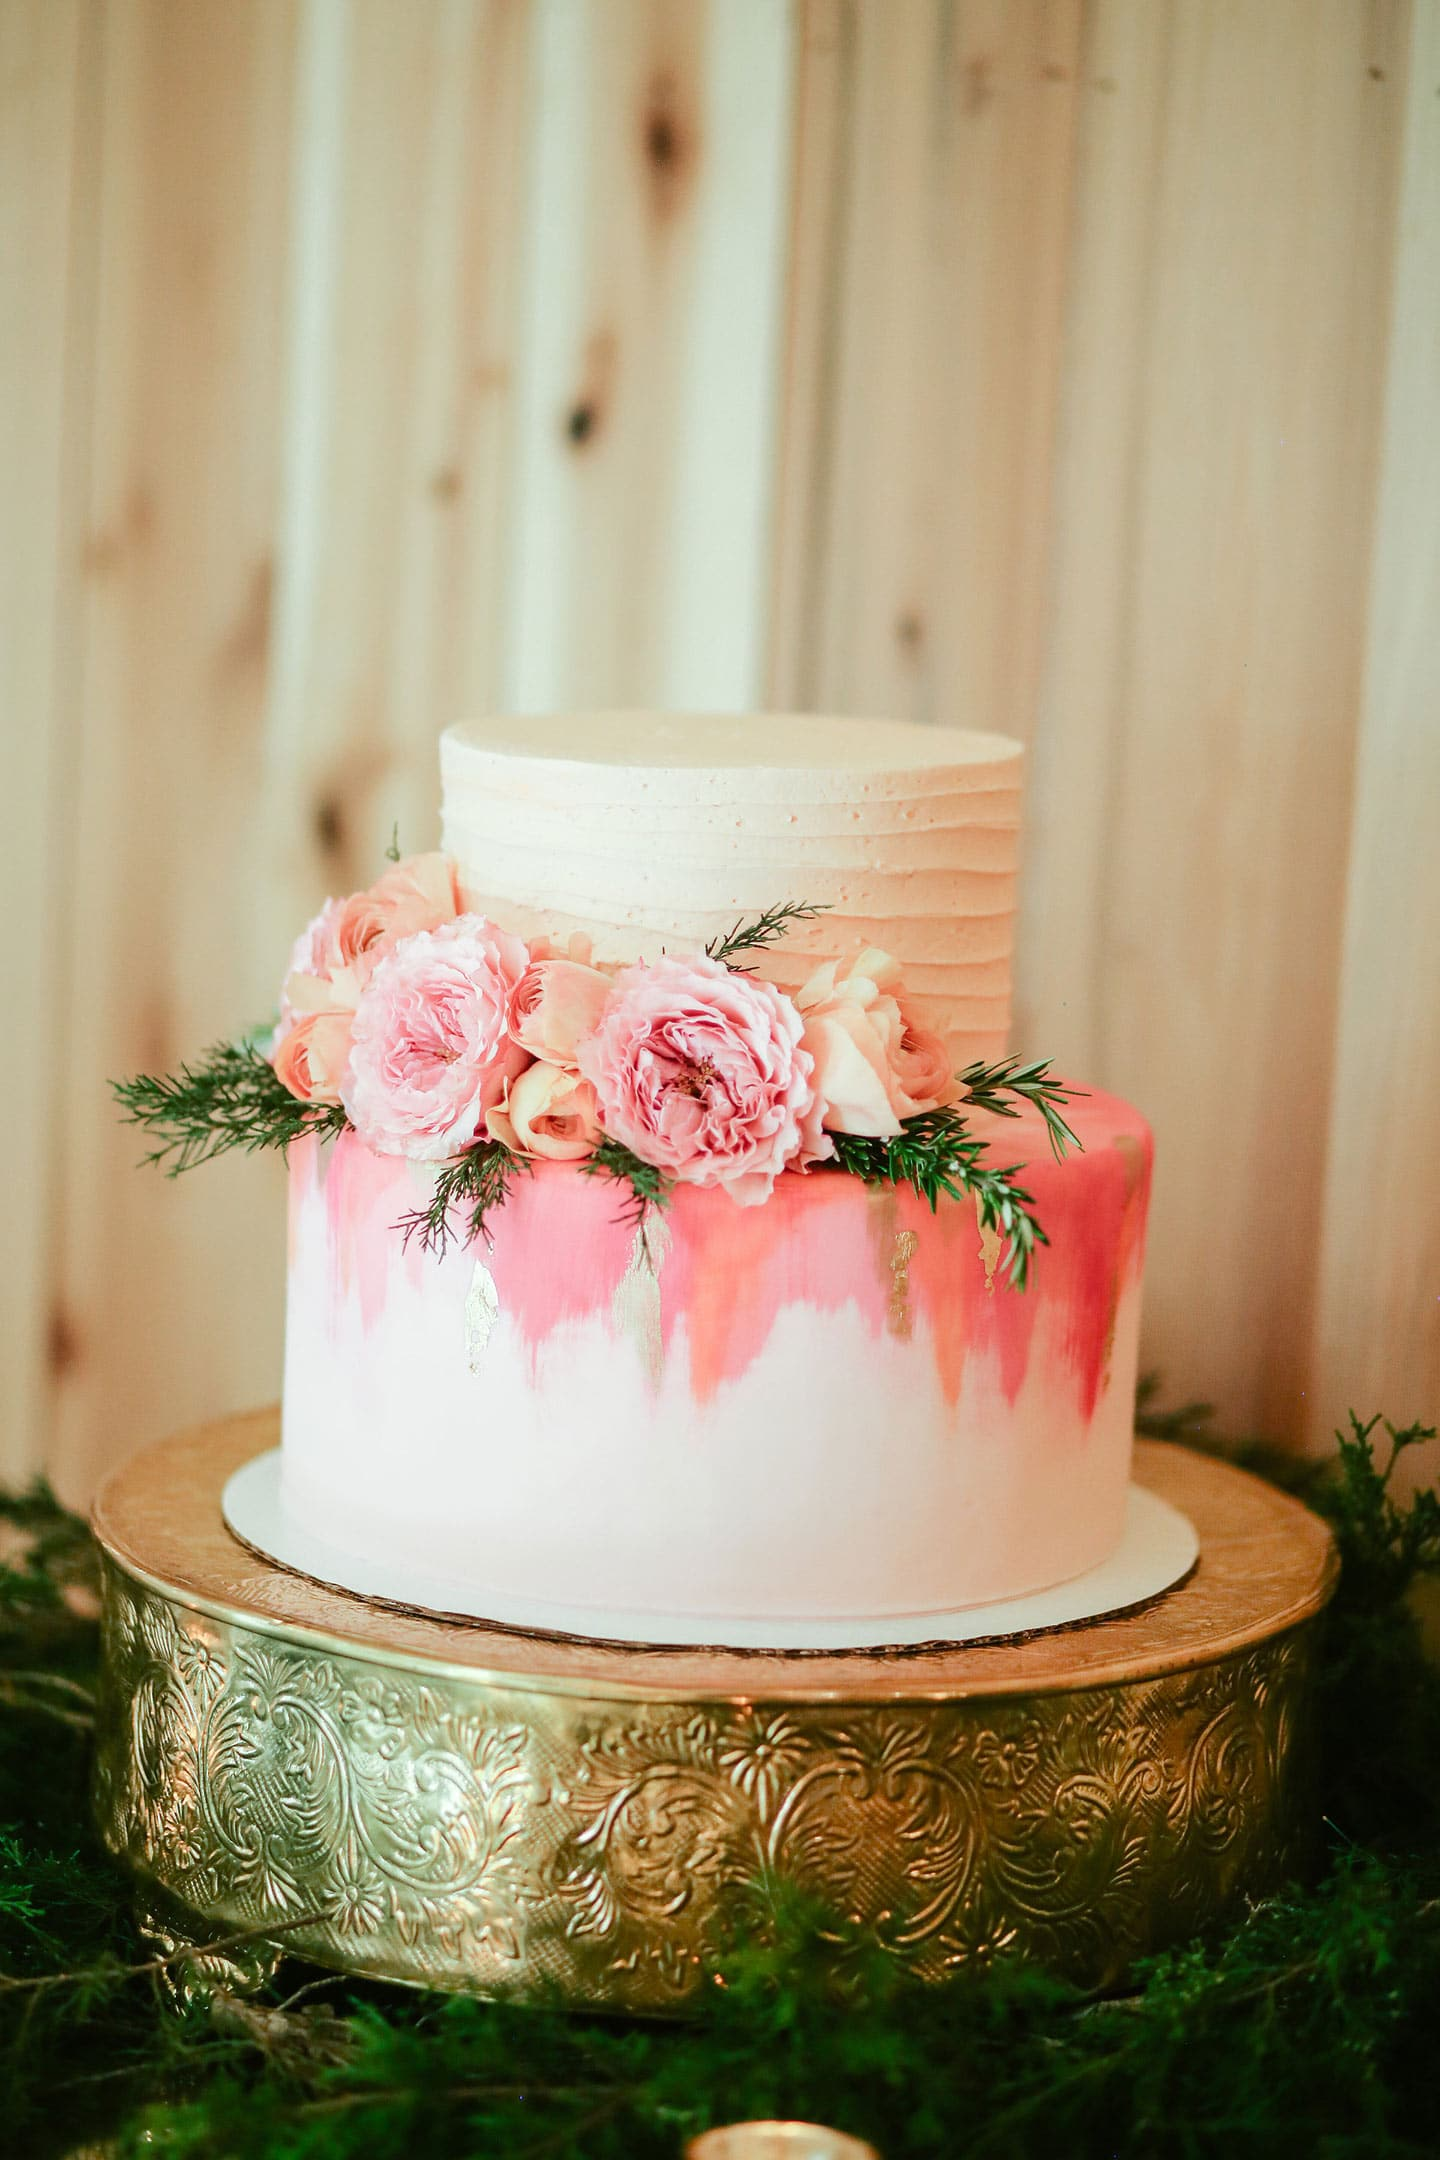 a white and pink tiered cake with flowers